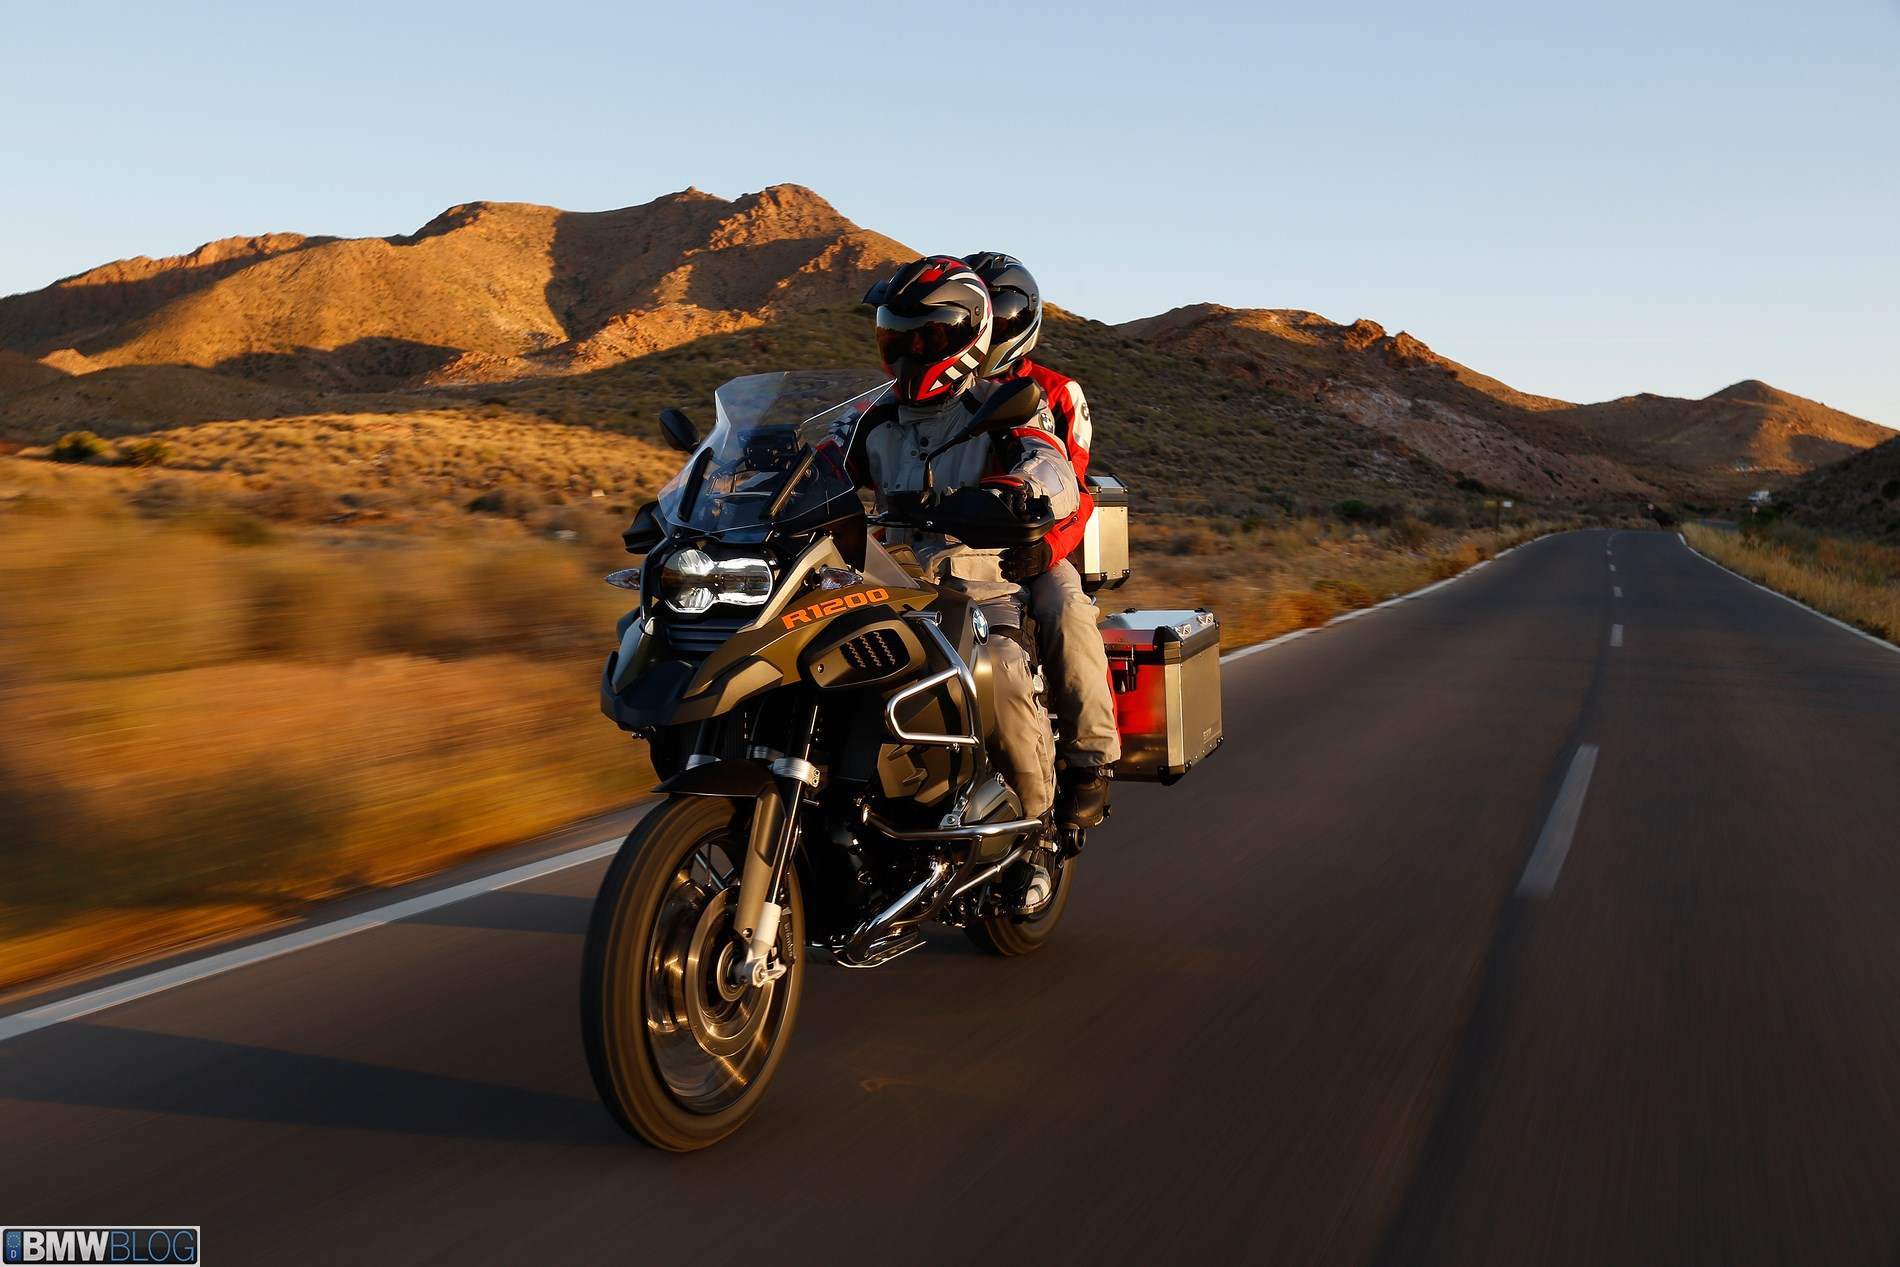 BMW R 1200 GS Adventure 101